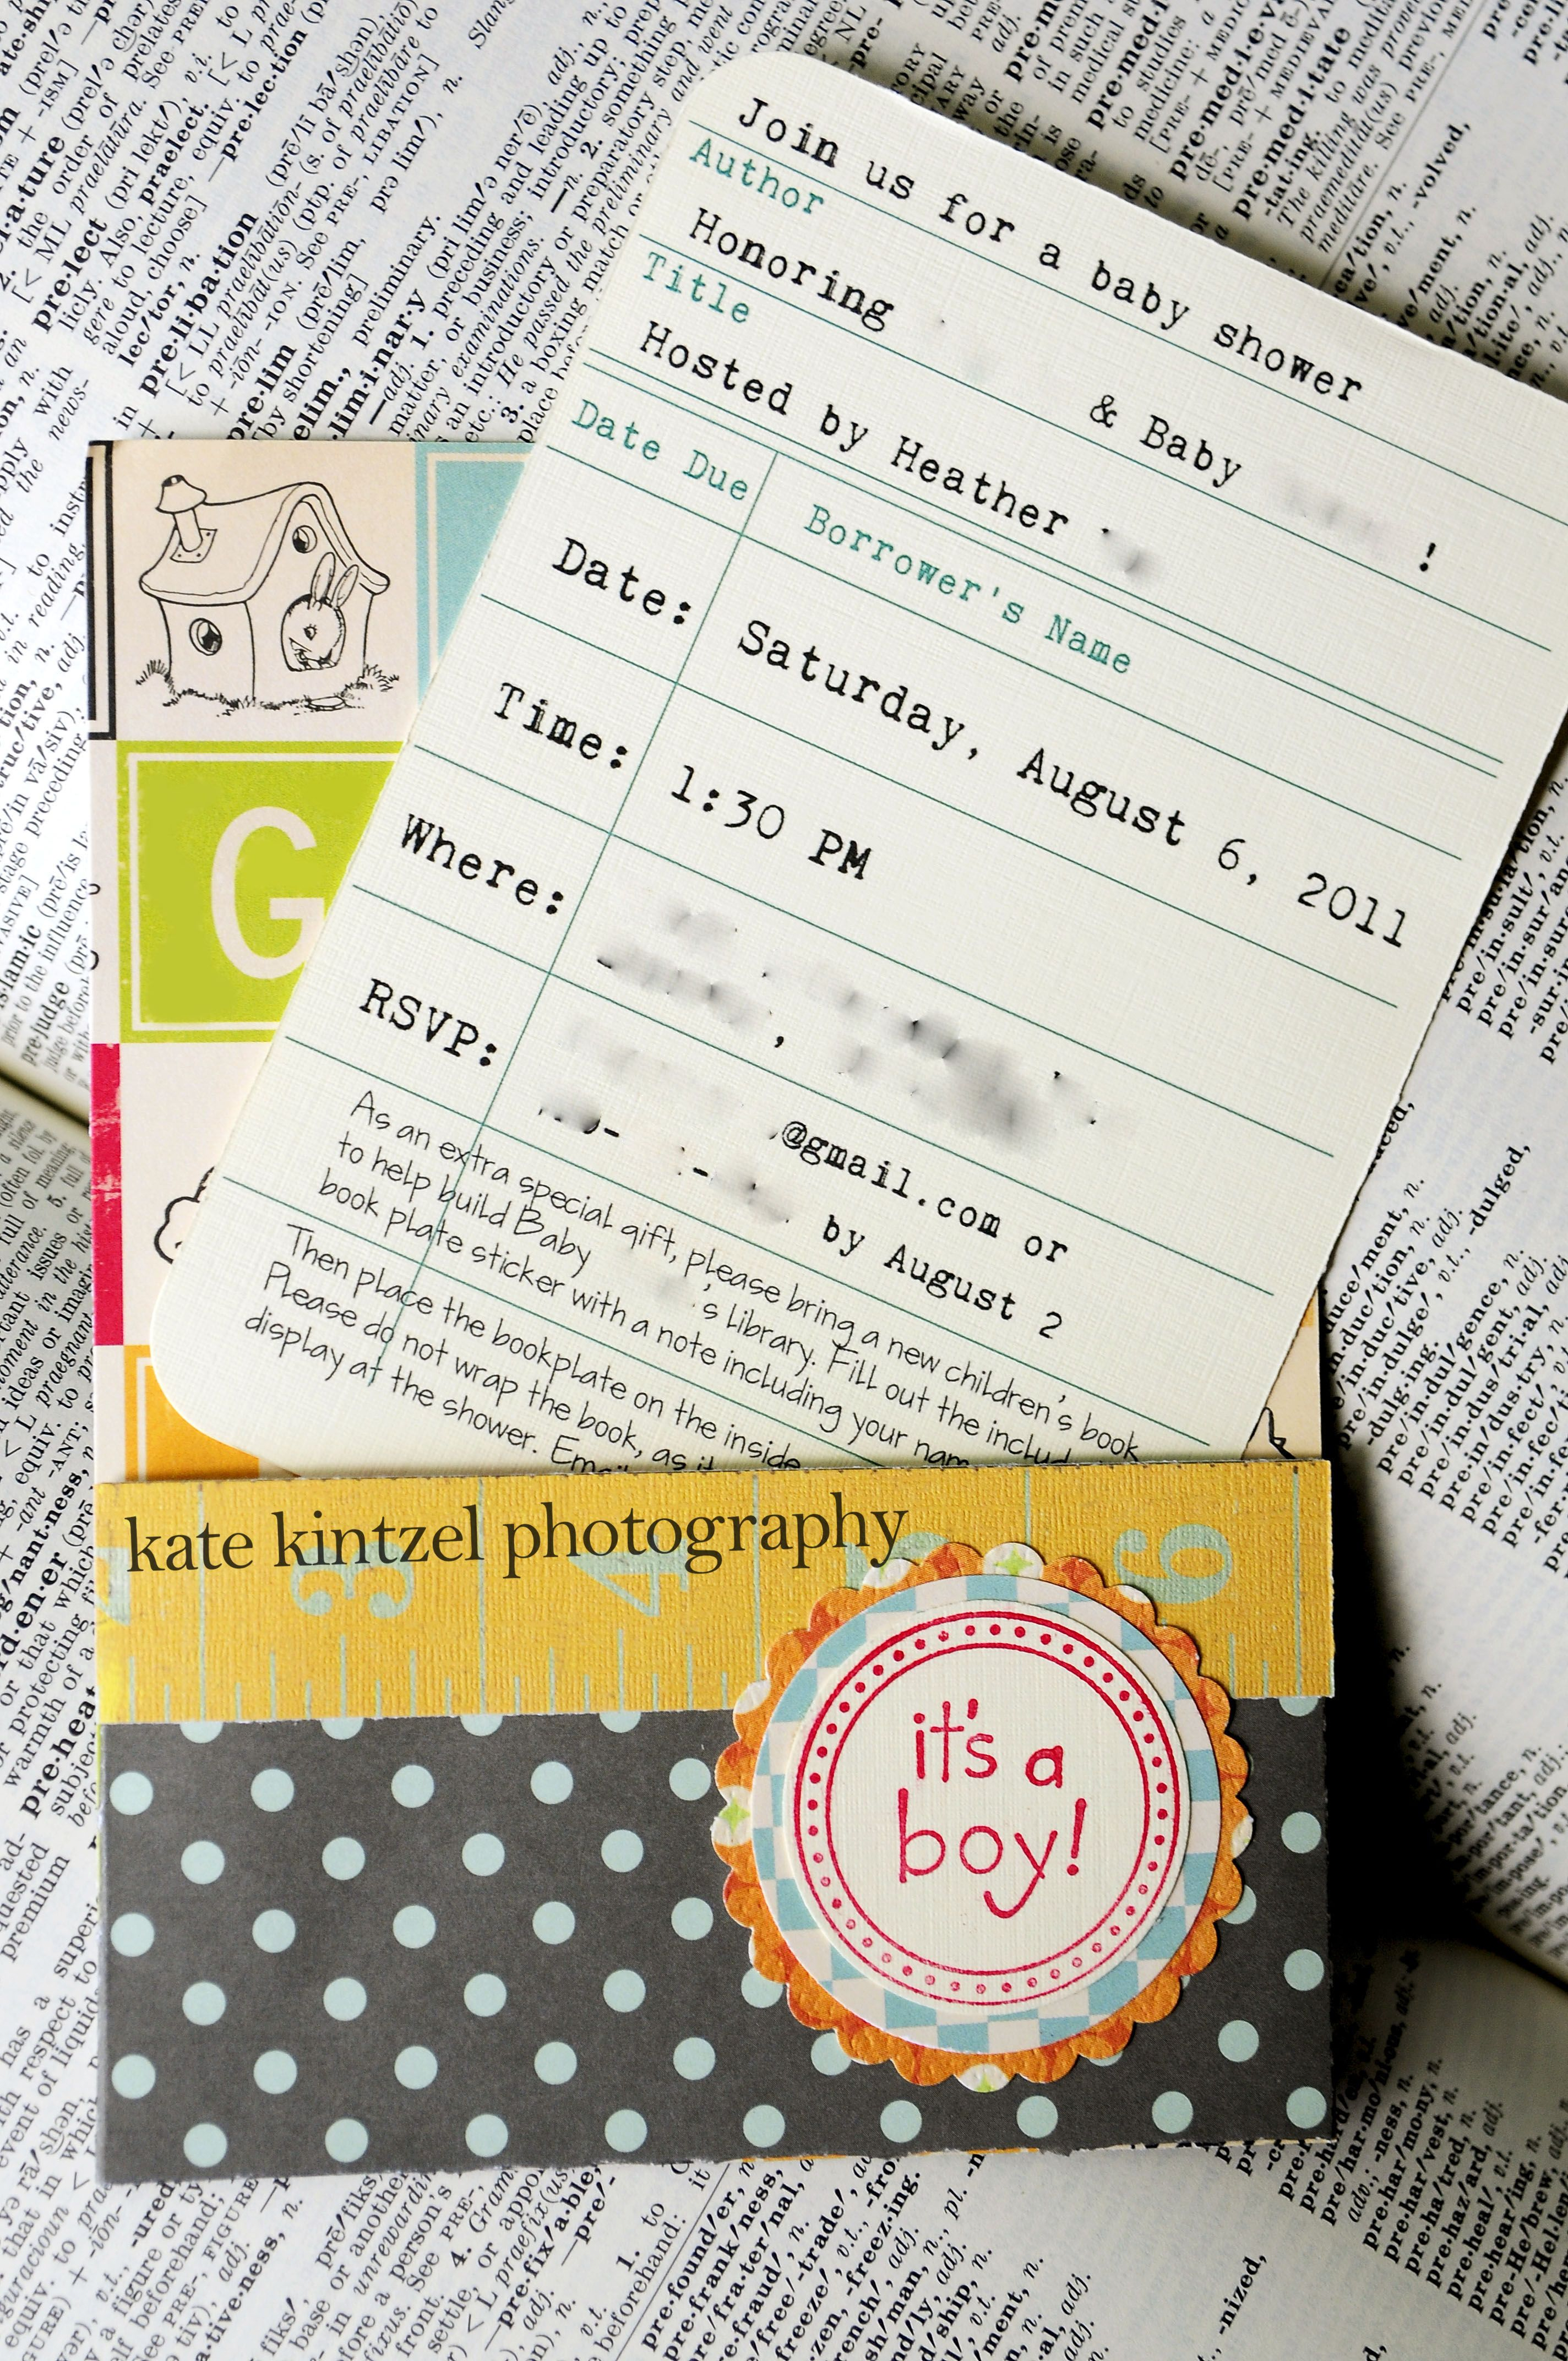 Very Cute Invitations For Any Sort Of Party Library CardsLibrary